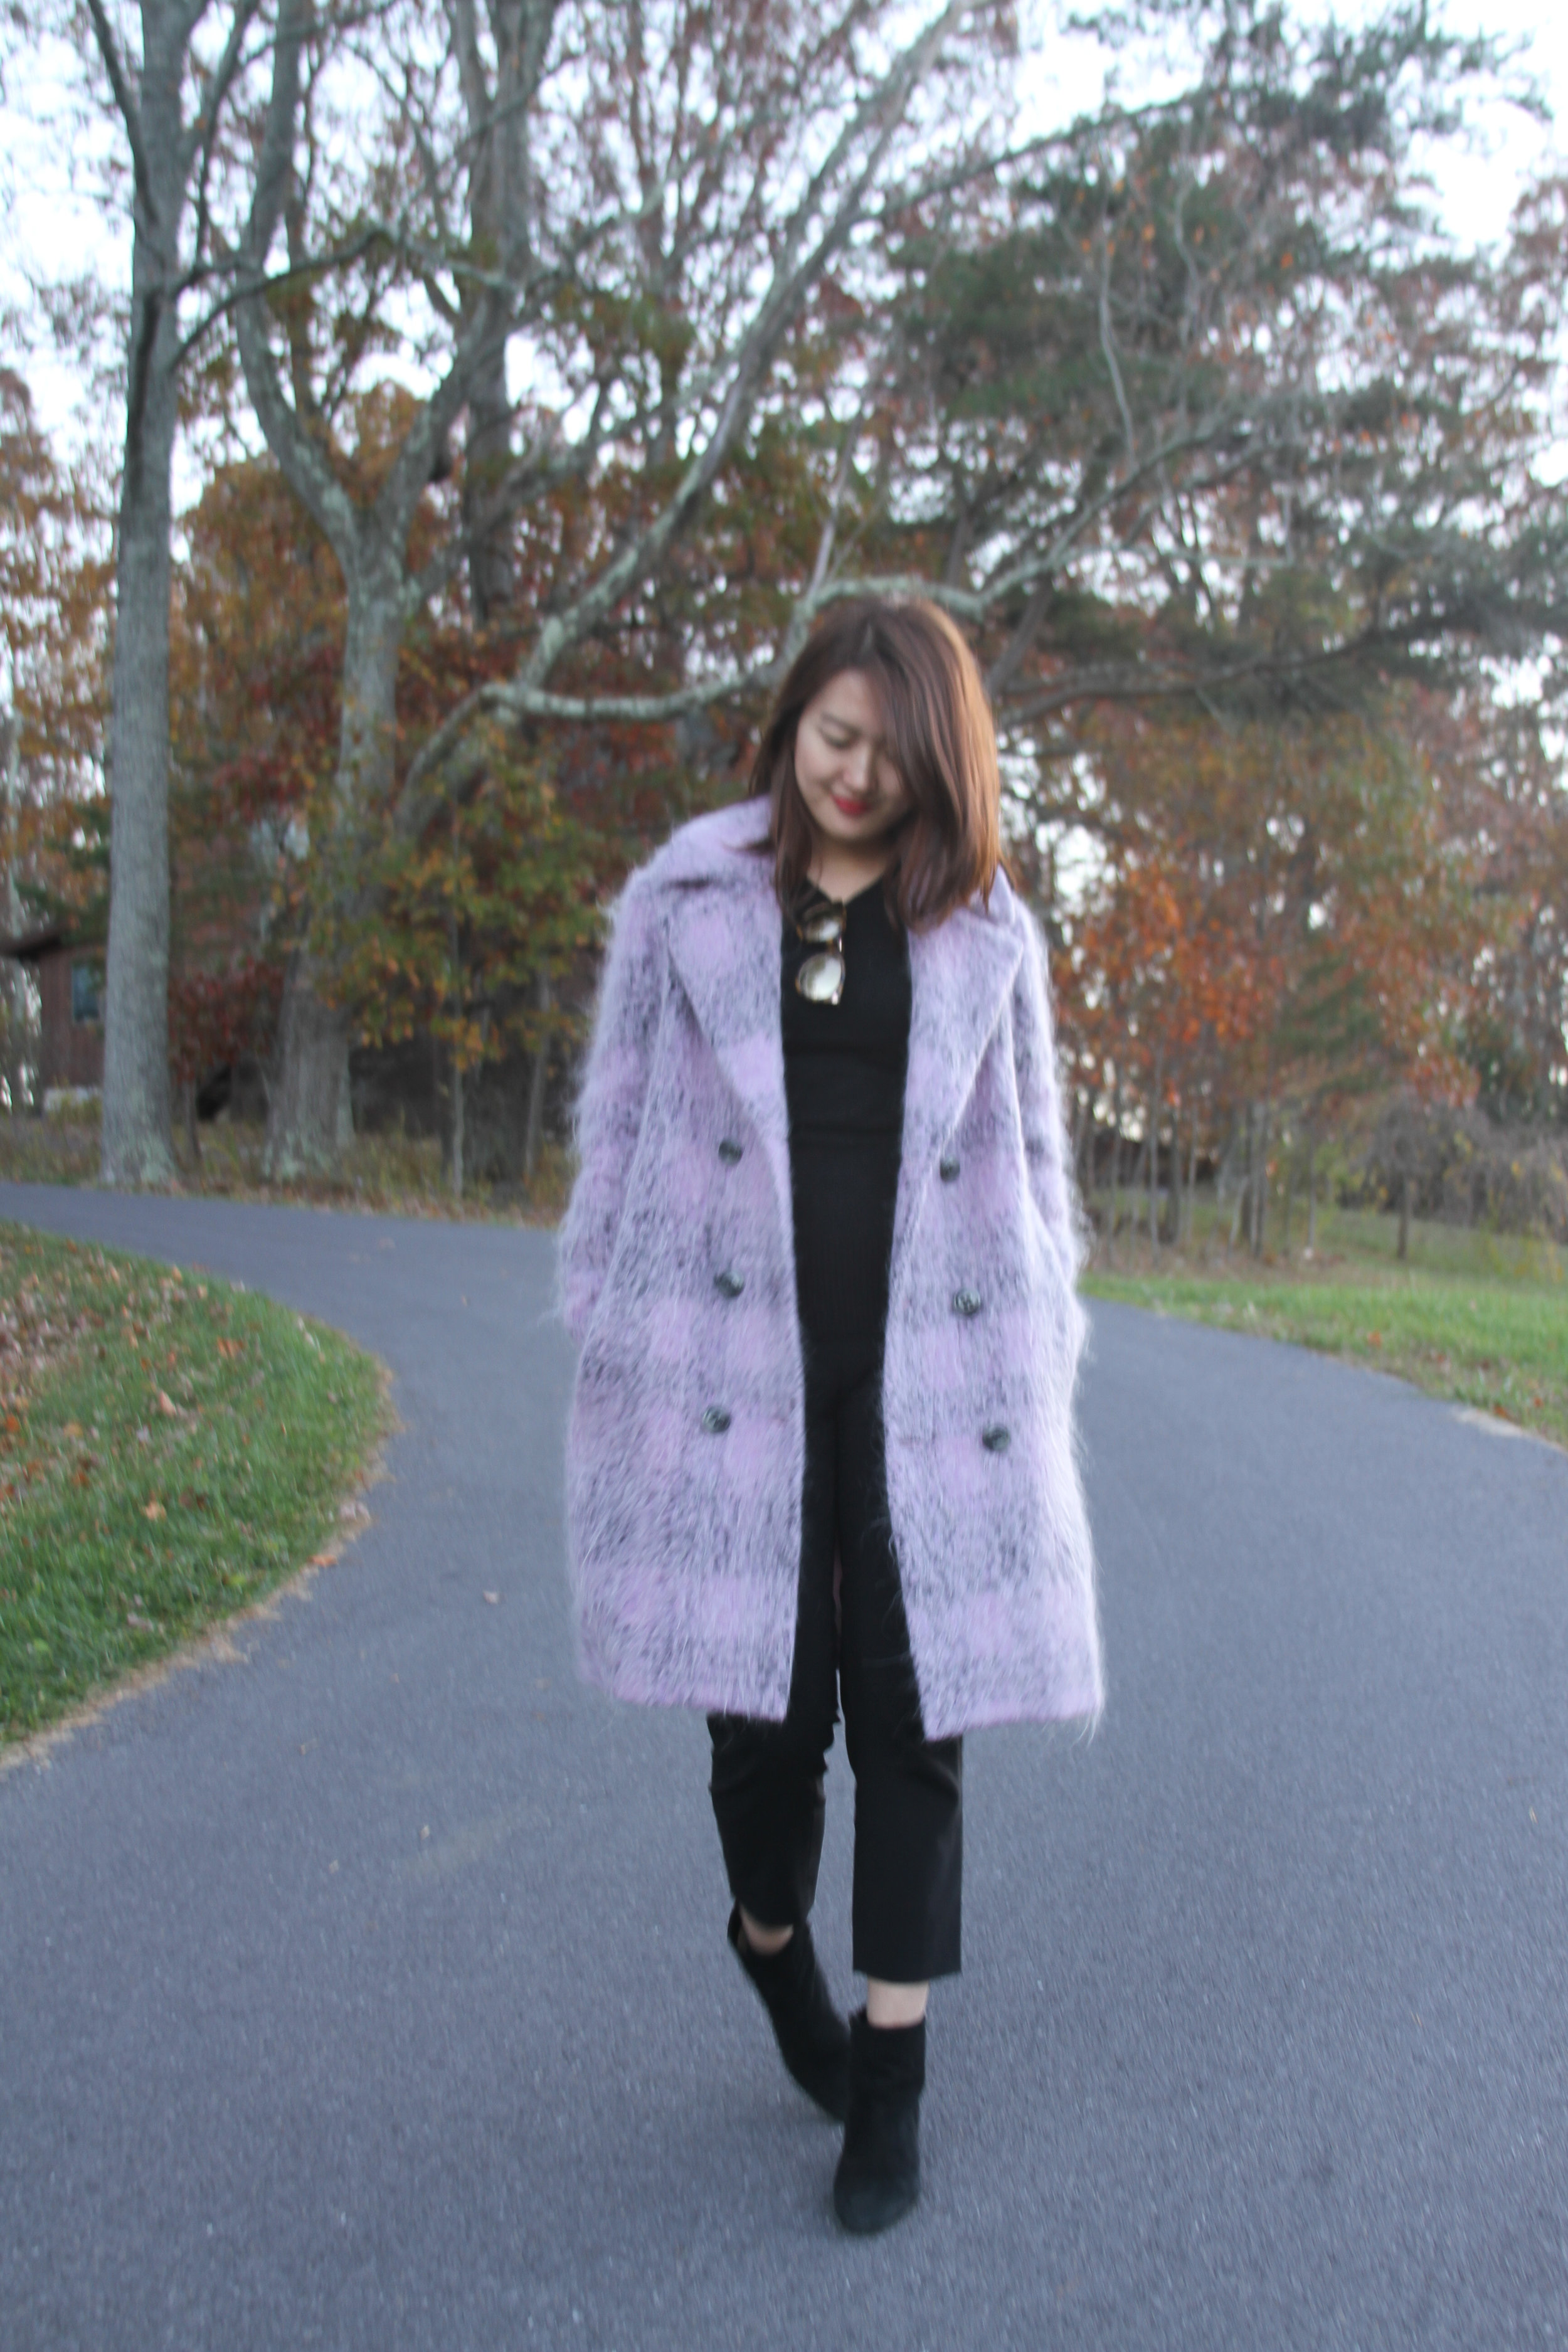 fashion blogger, winter fashion autumn fashion, winter street fashion, autumn street fashion, Violet Wool and Mohair Blend Coat, Styled with Black Fitted Sweater, Black Wool Cropped Pants, and Black Chunky Ankle Boots, junelemongirl, june lemon girl, nyc blogger, ootd, violet coat, purple coat